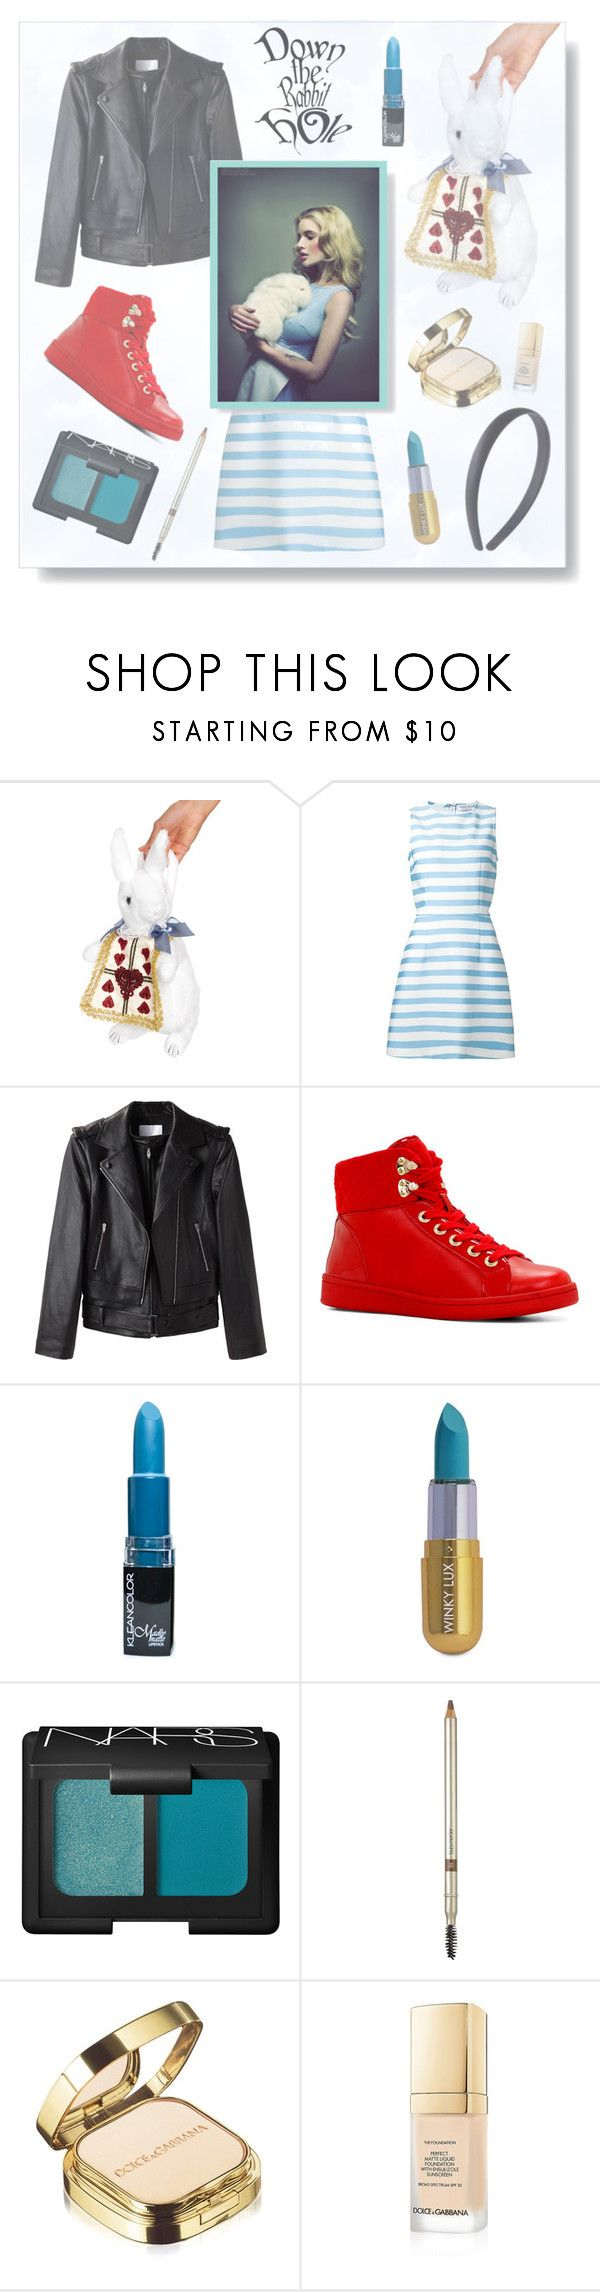 """Down the Rabbit Hole"" by jleigh329 ❤ liked on Polyvore featuring Leg Avenue, Tanya Taylor, Alexander Wang, ALDO, Winky Lux, NARS Cosmetics, Laura Mercier, Dolce&Gabbana, modern and disney"